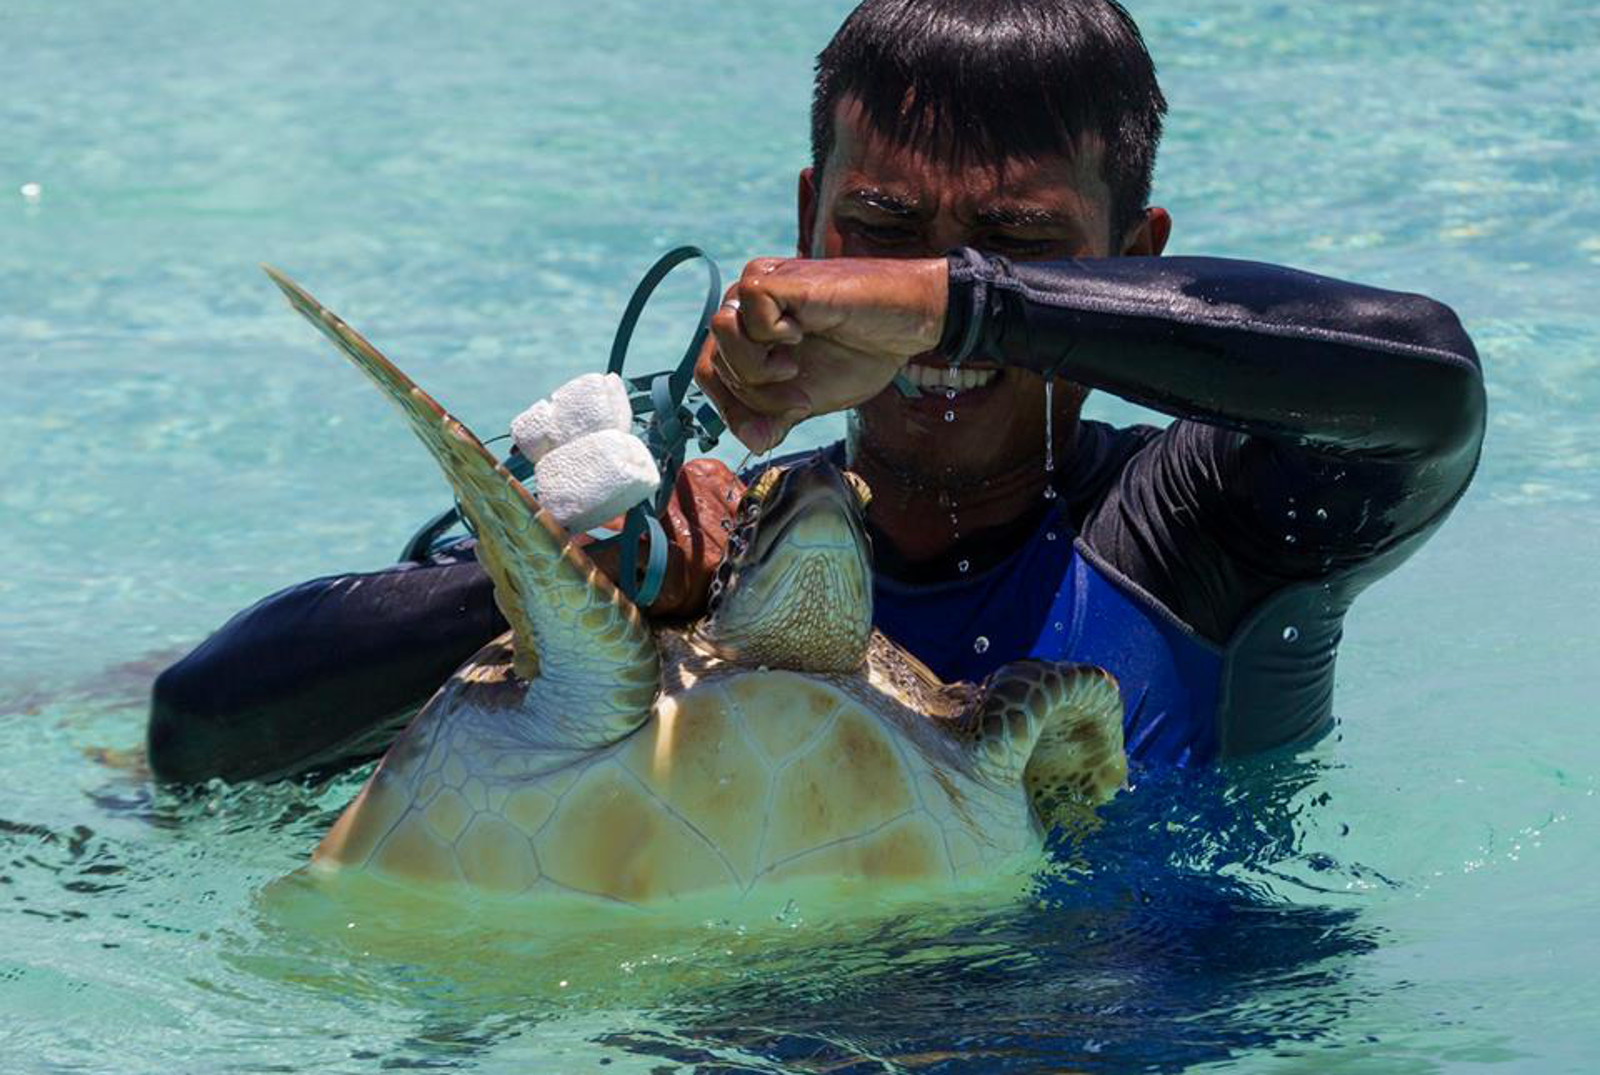 Turtle Trapped in Plastic Will Make You Think Twice Before Choosing Single-Use